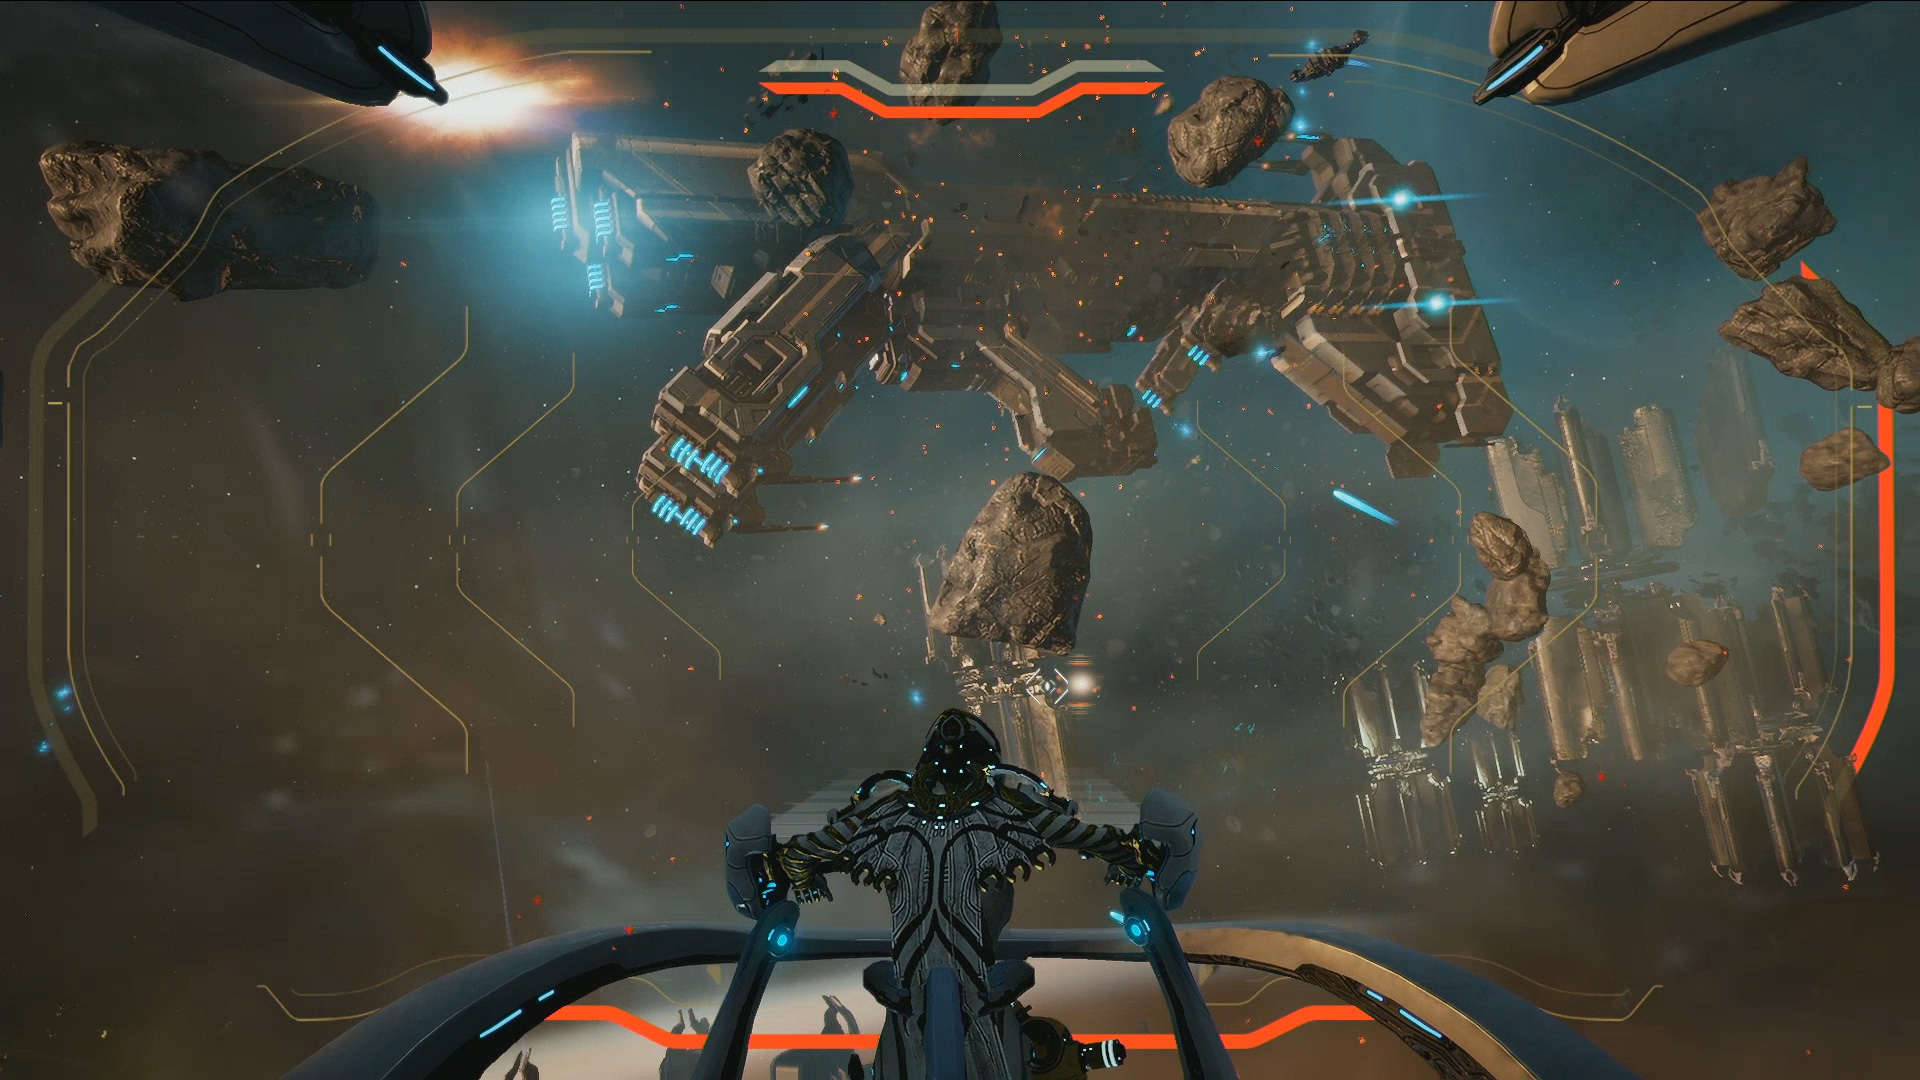 Warframe teases ship-to-ship combat at PC Gaming Show, offers free